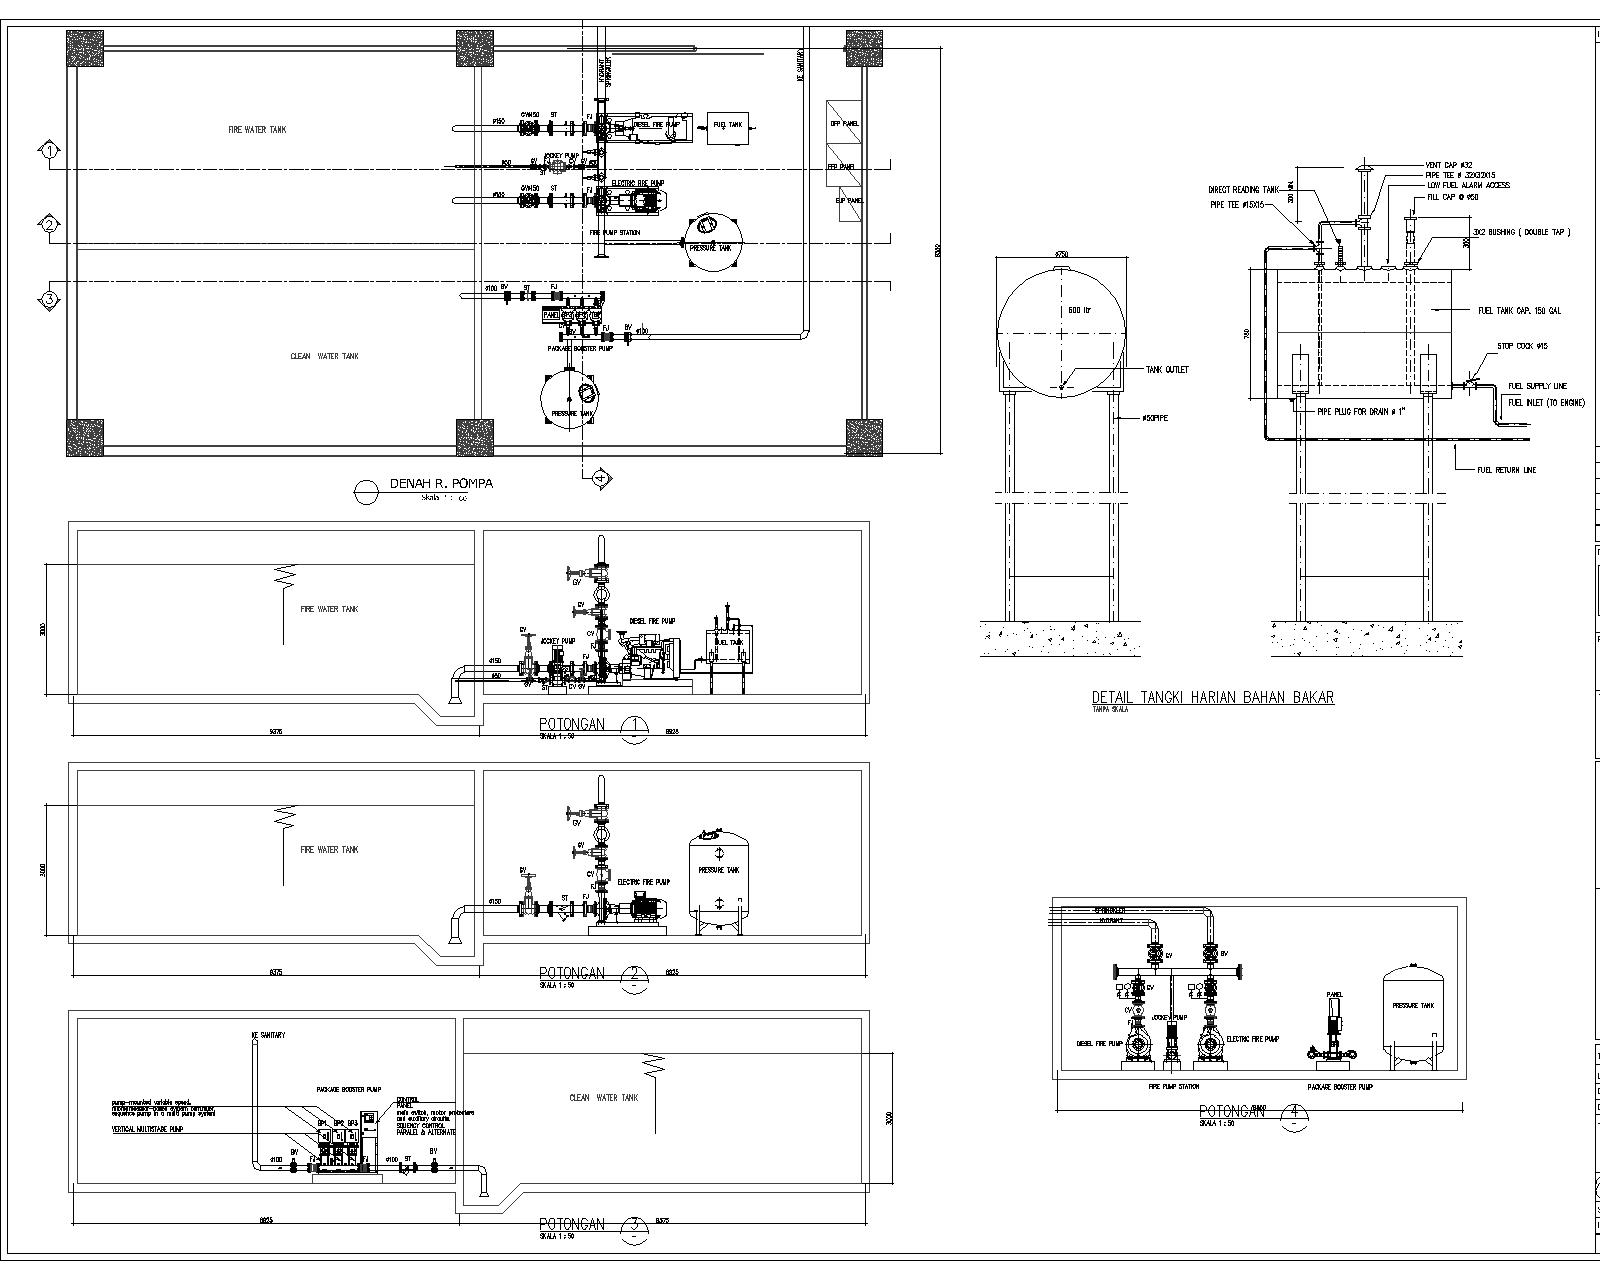 Diagram Of Water Cooled Chiller System